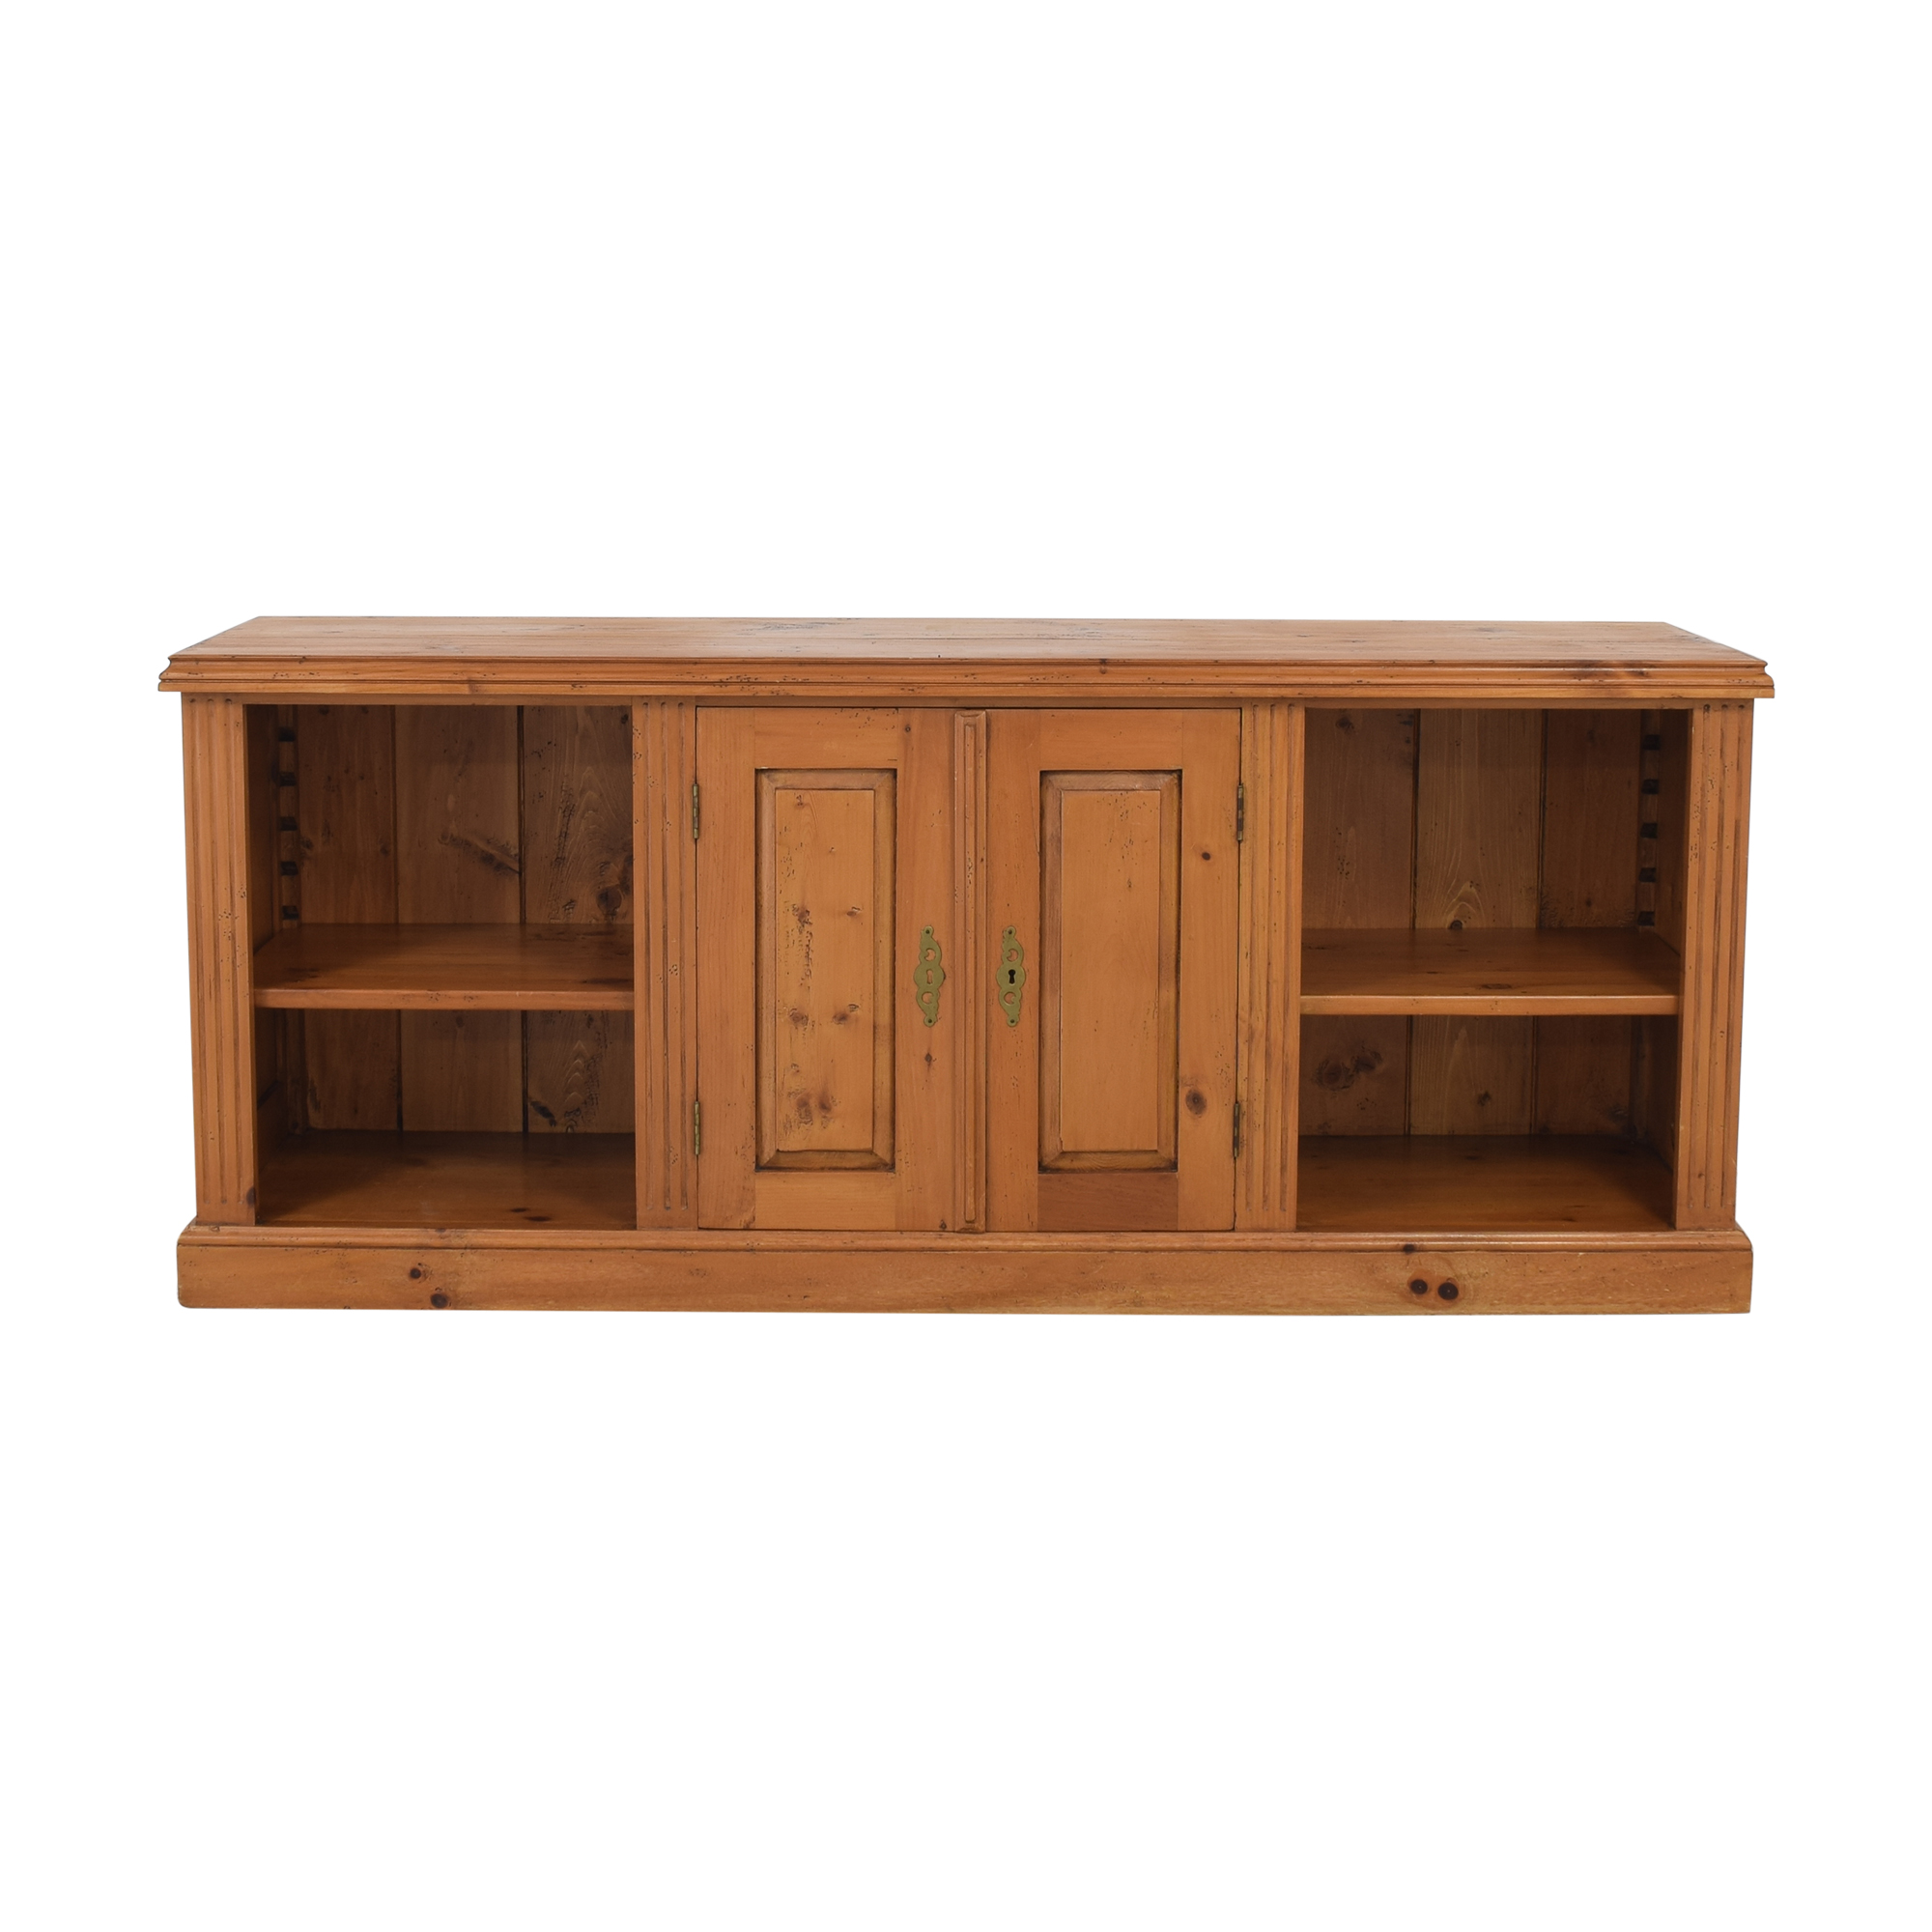 Wooden Entertainment Piece or Sideboard / Cabinets & Sideboards